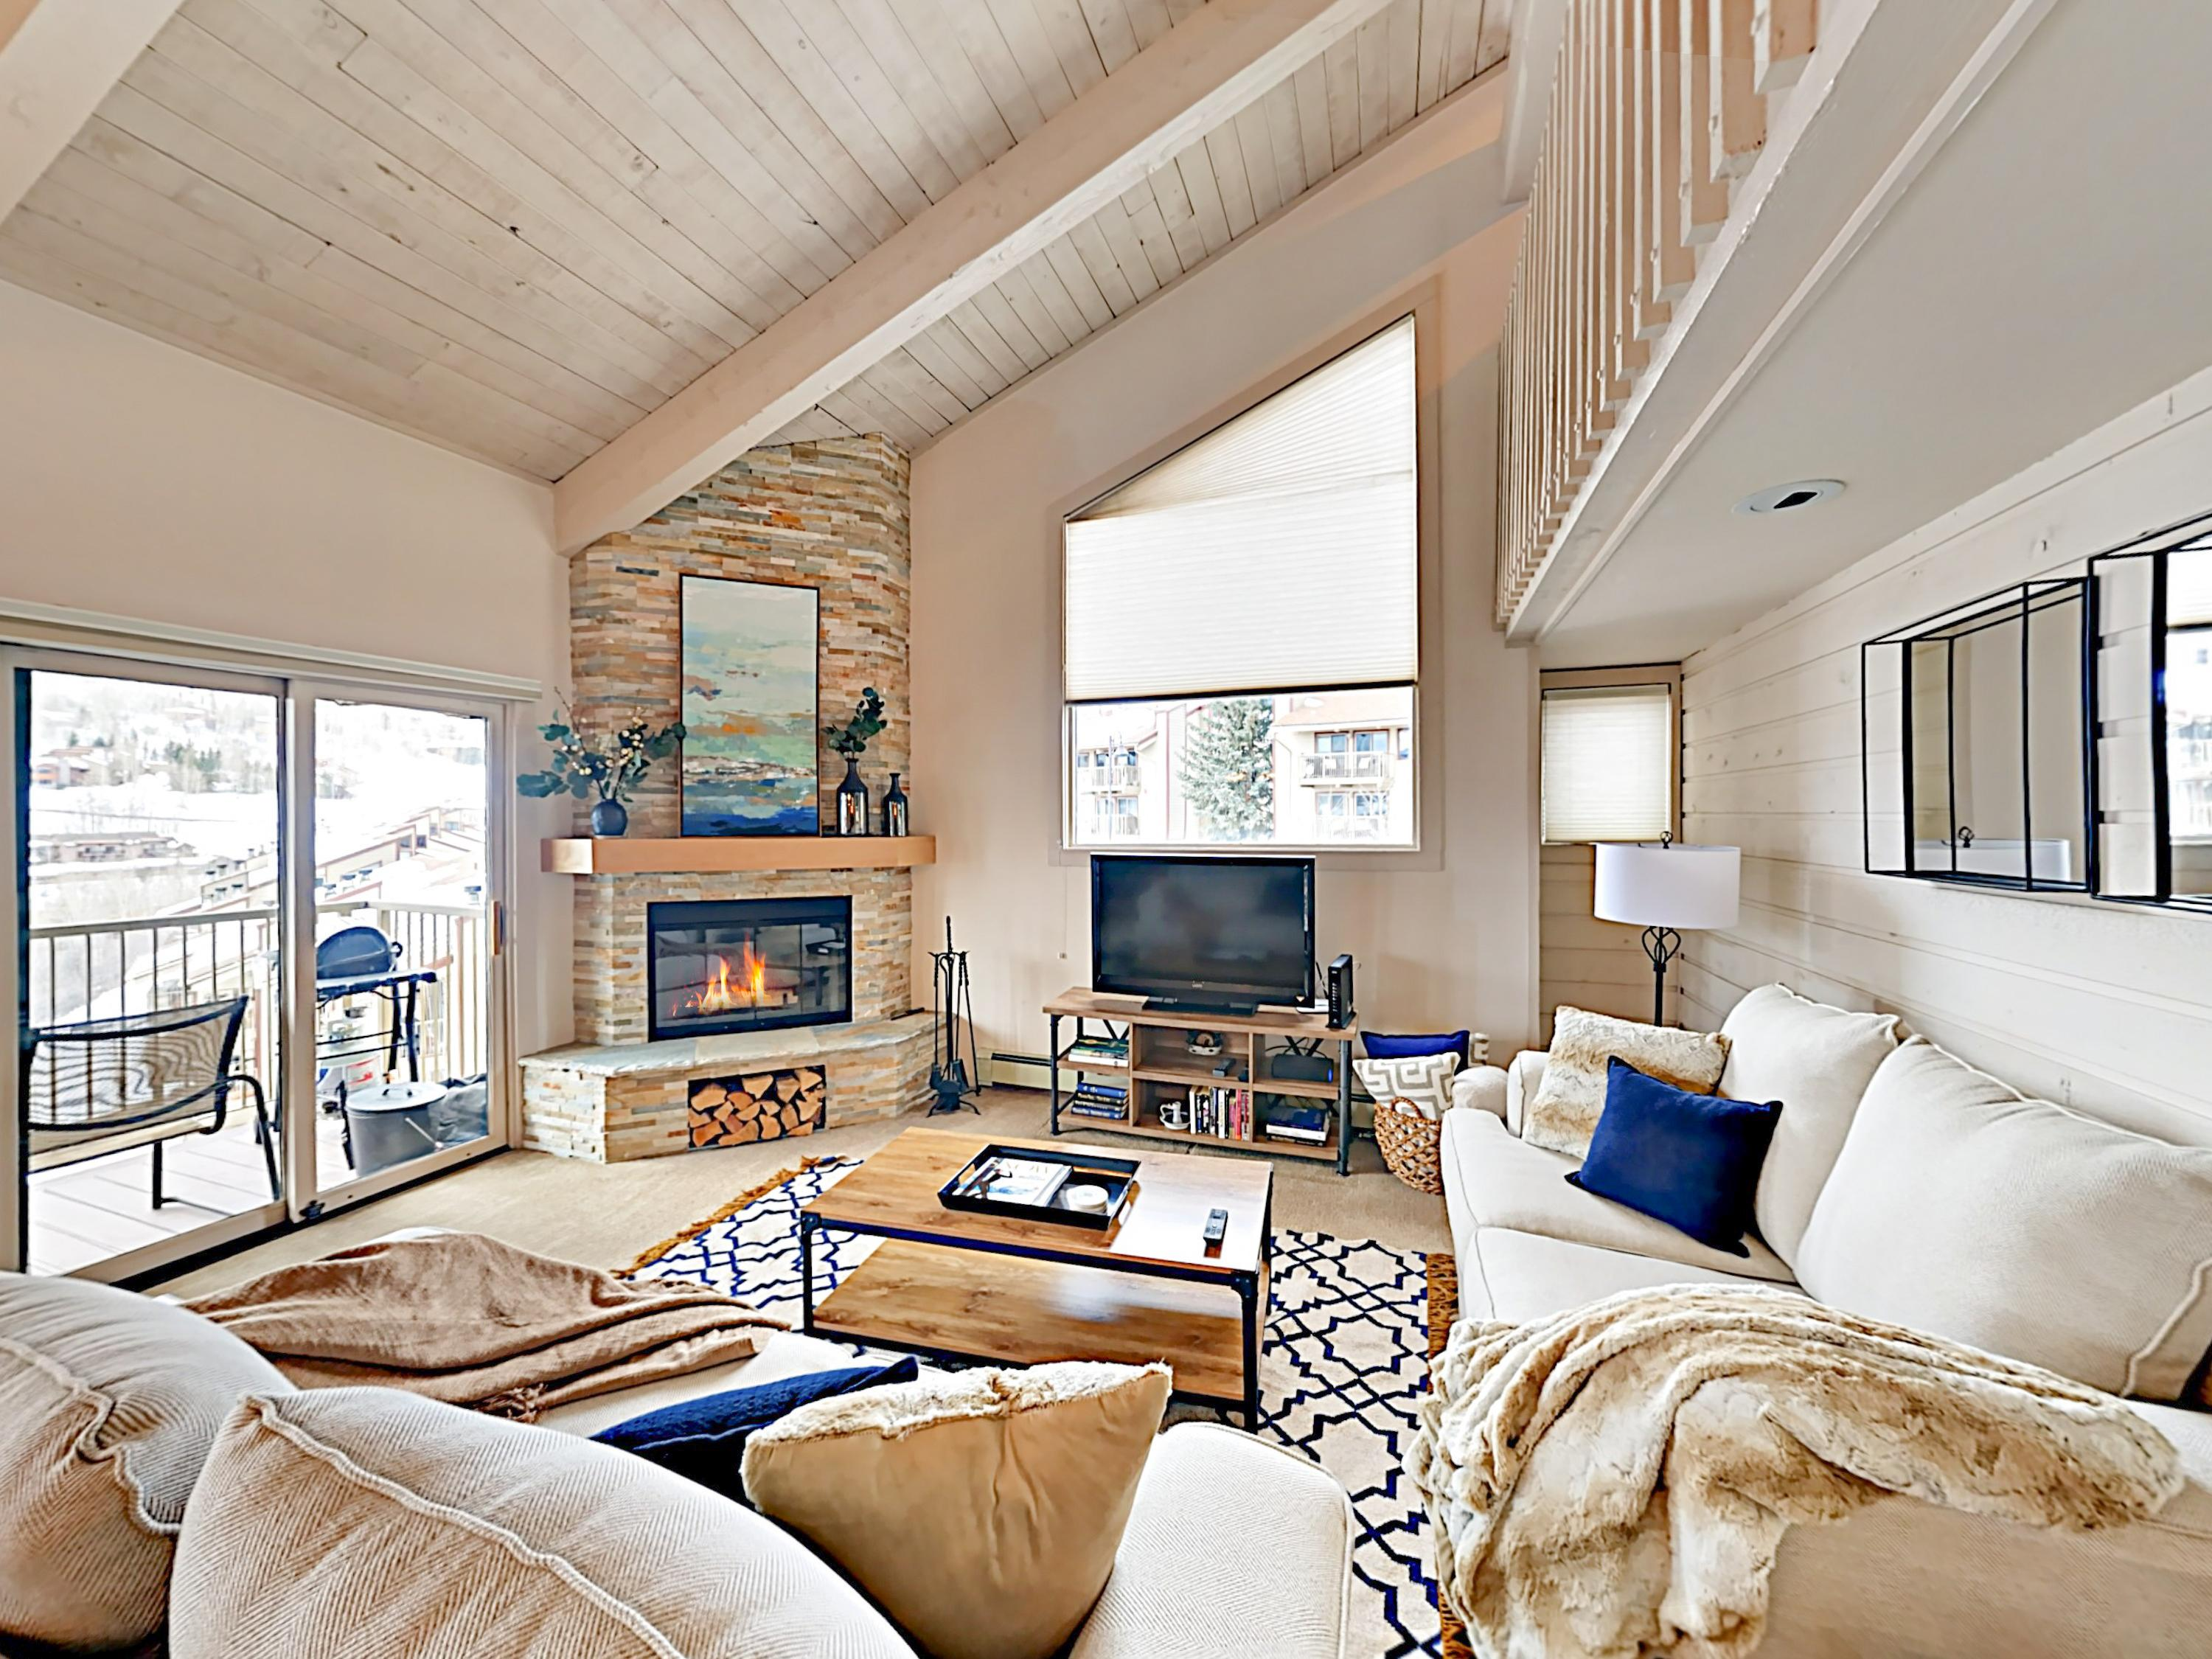 Welcome to Snowmass Village! This corner unit condo is professionally managed by TurnKey Vacation Rentals.